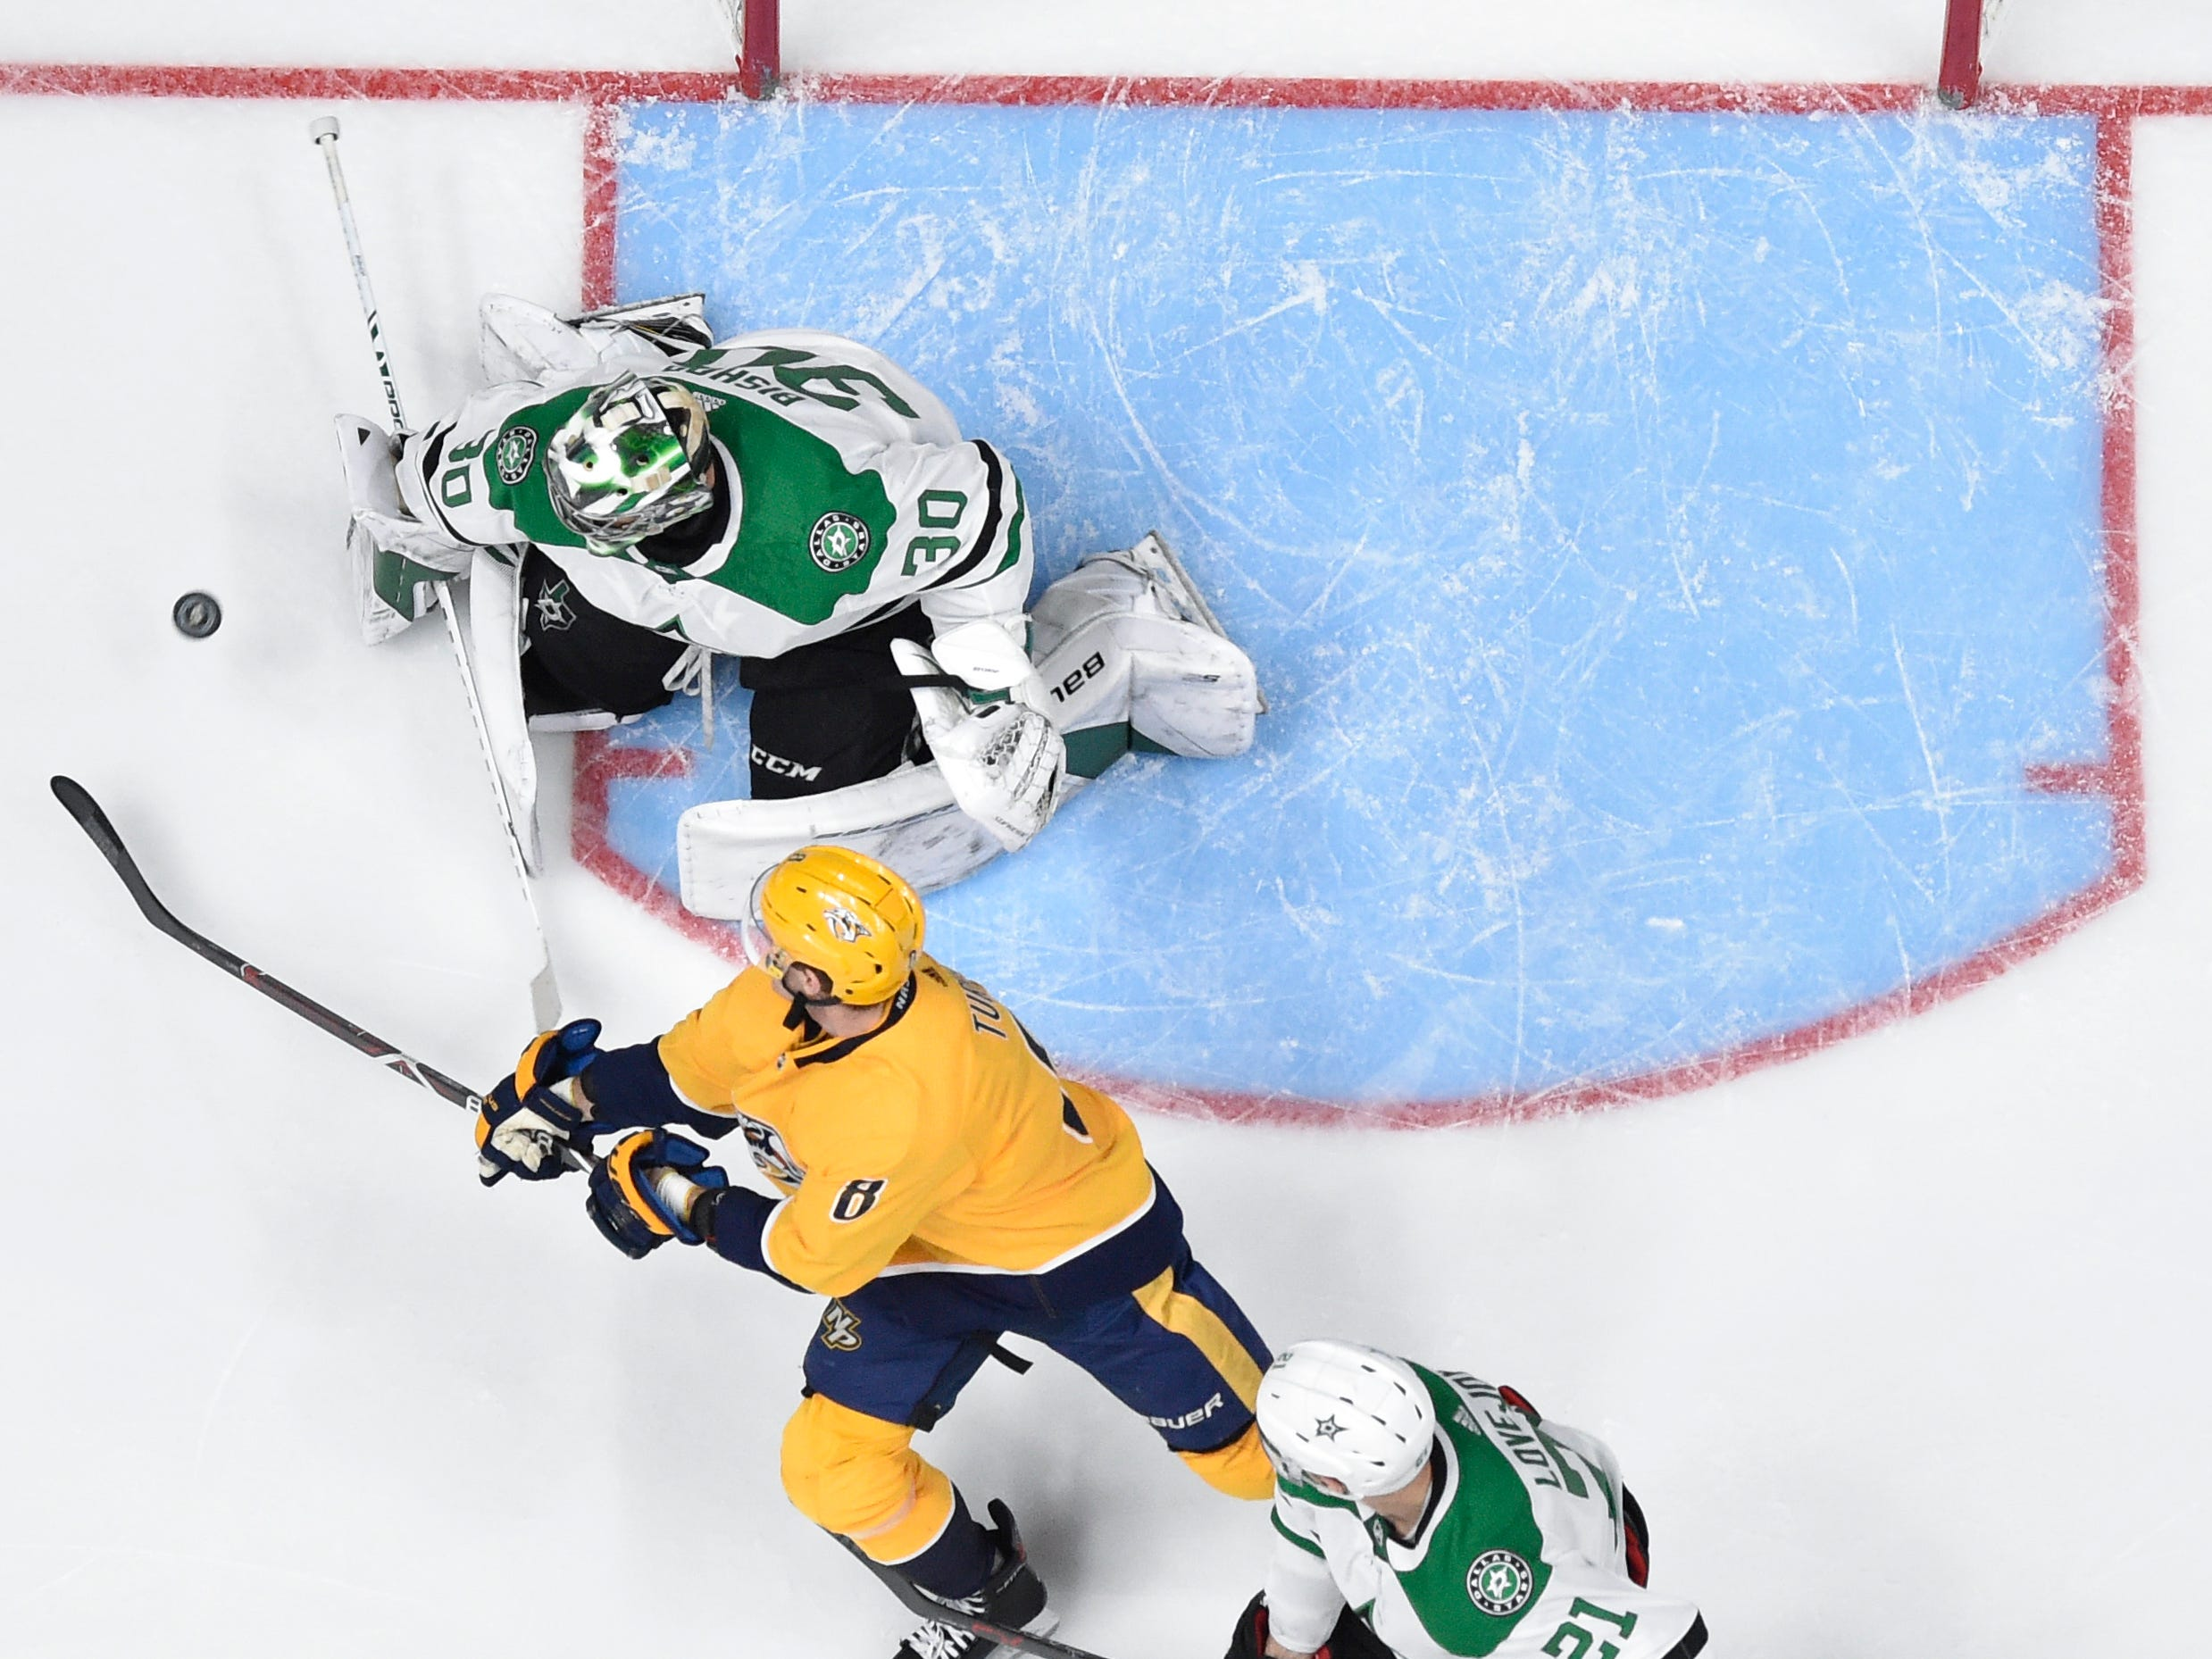 Dallas Stars goaltender Ben Bishop (30) and defenseman Ben Lovejoy (21) defend against Nashville Predators center Kyle Turris (8) during the second period of the divisional semifinal game at Bridgestone Arena in Nashville, Tenn., Wednesday, April 10, 2019.